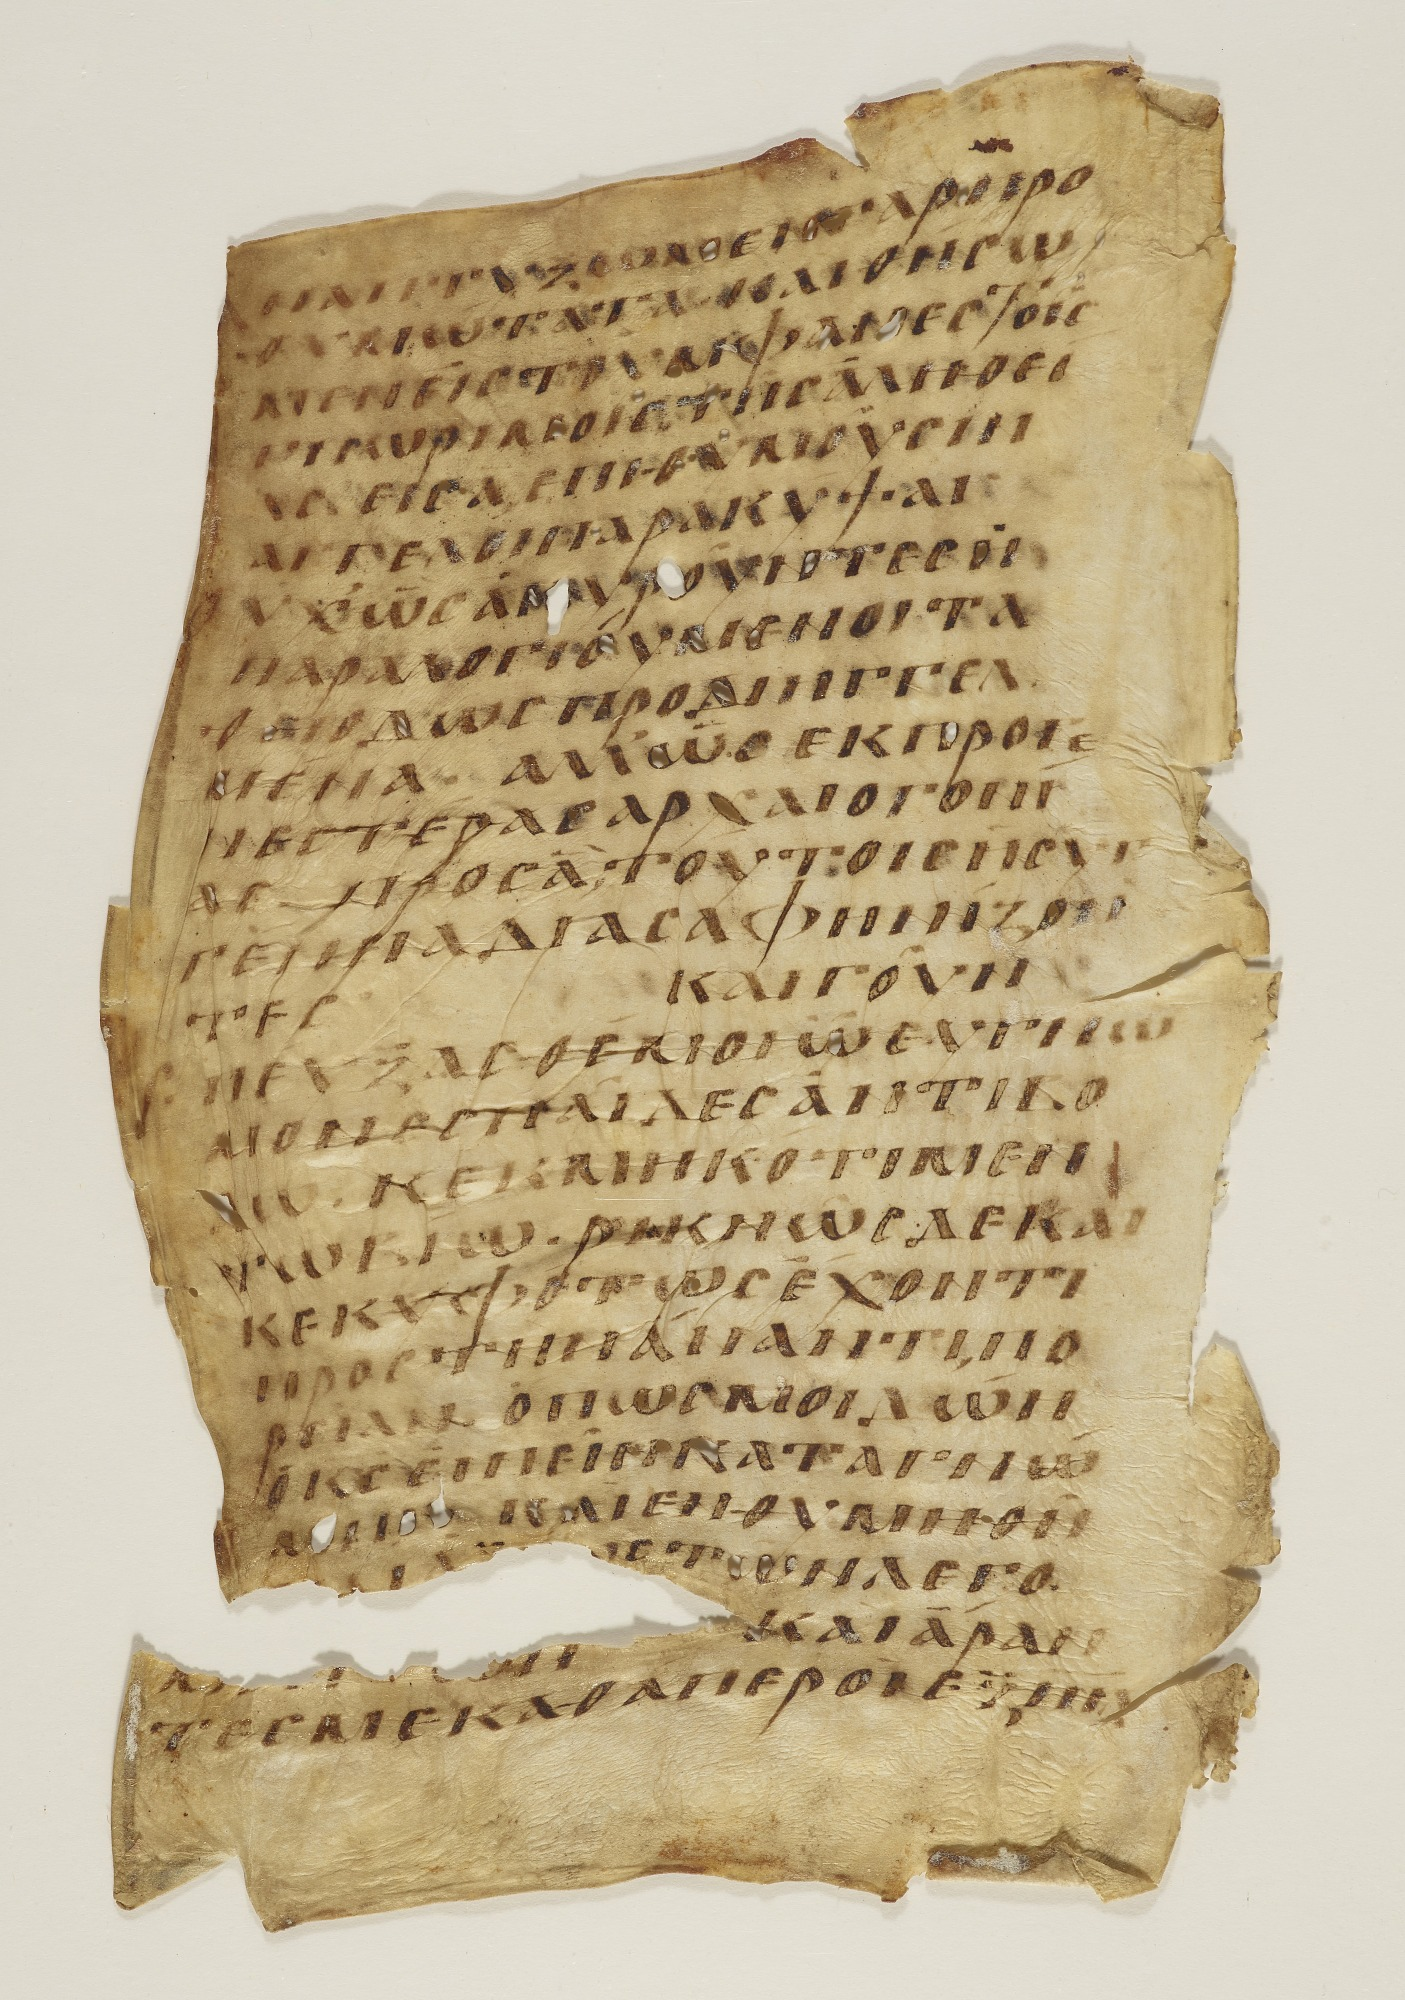 Folio bearing a continuous fragment of text from Cyril of Alexandria, Homiliae Diversai, X, 374 (Mignet ed.)